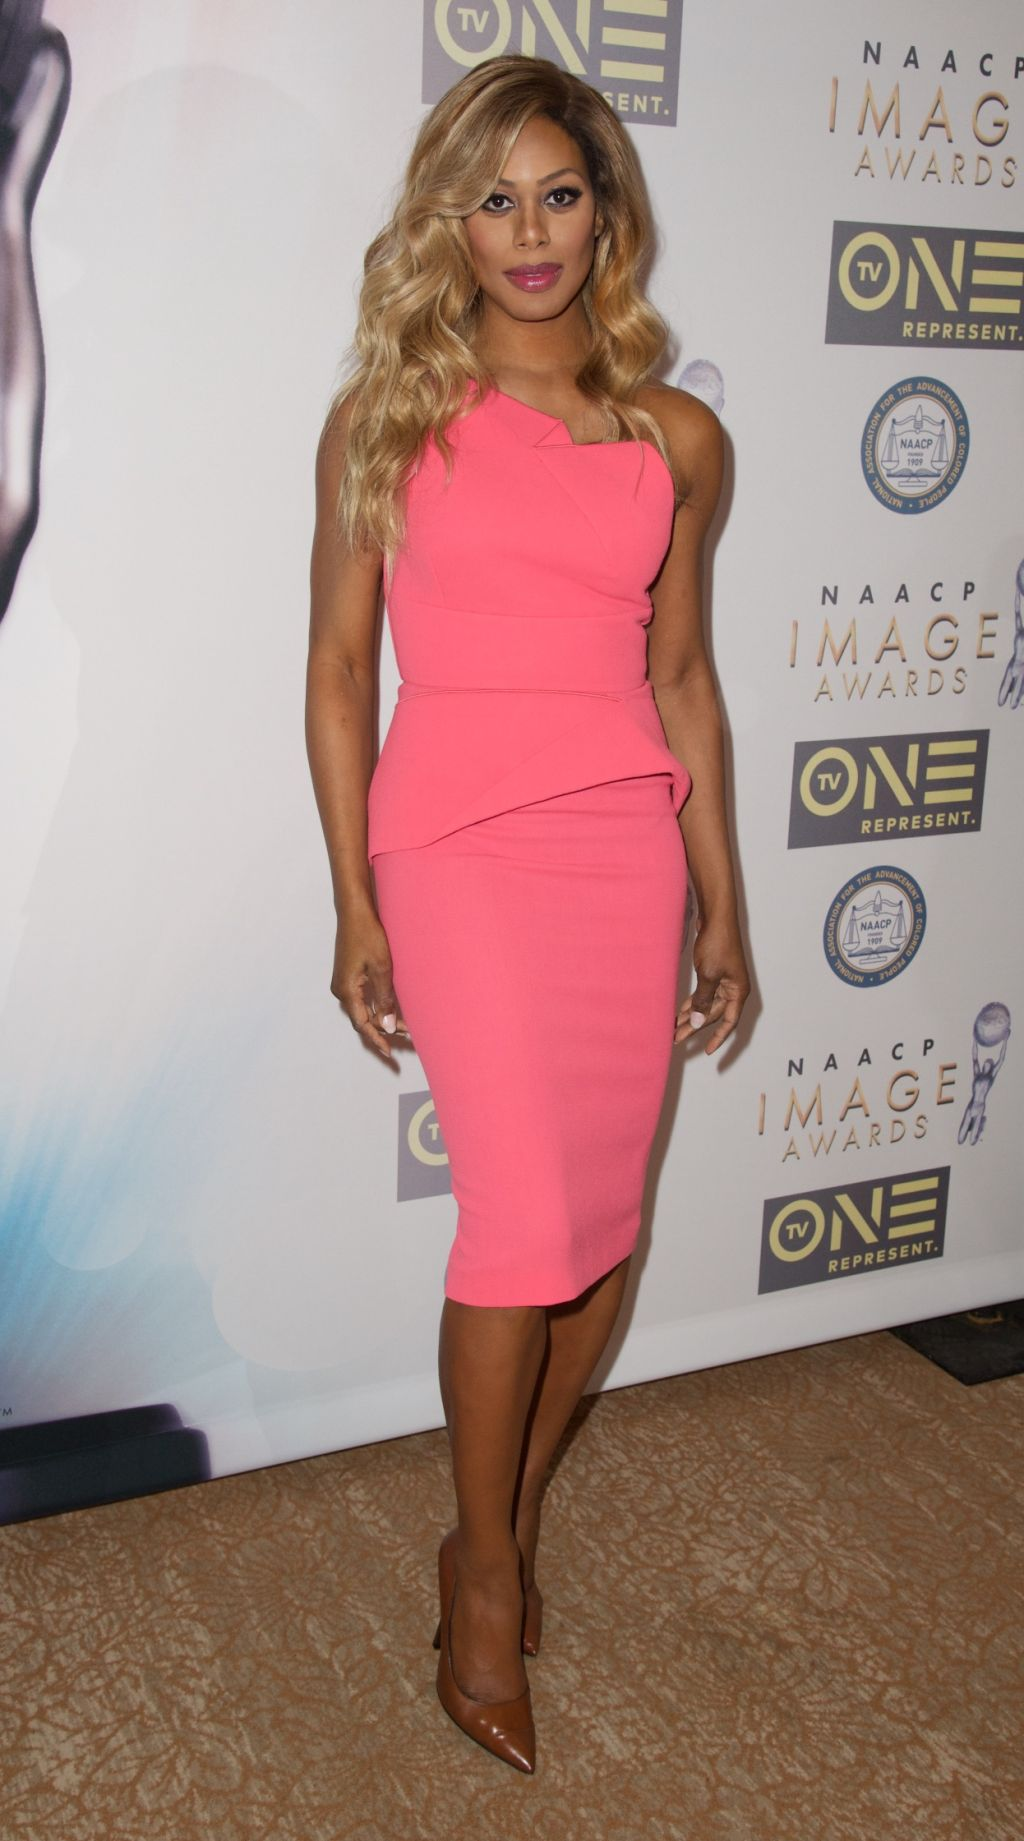 47th NAACP Image Awards Nominees' Luncheon - Arrivals